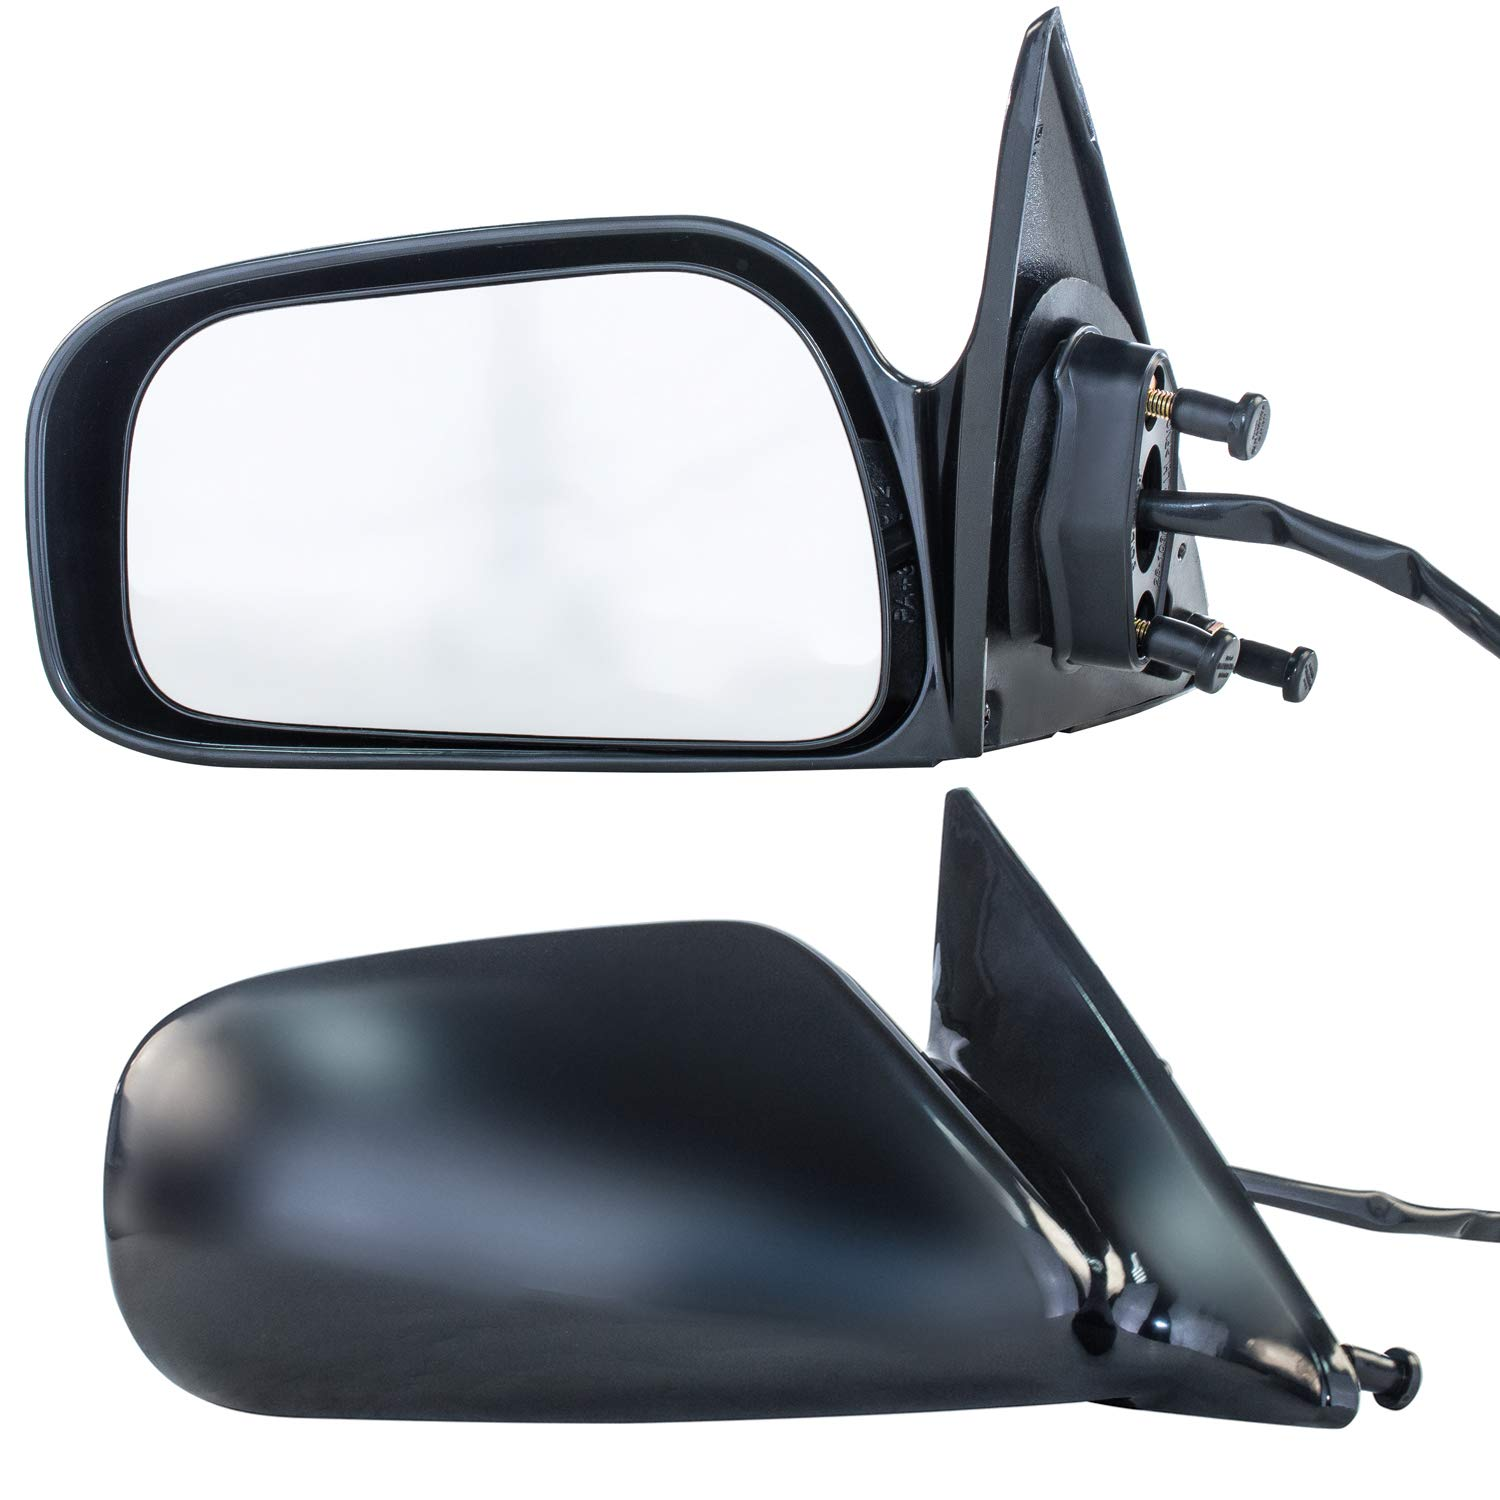 Dependable Direct Driver and Passenger Side Unpainted Non-Heated Non-Folding Door Mirrors for USA Built Toyota Camry (1997 1998 1999 2000 2001)